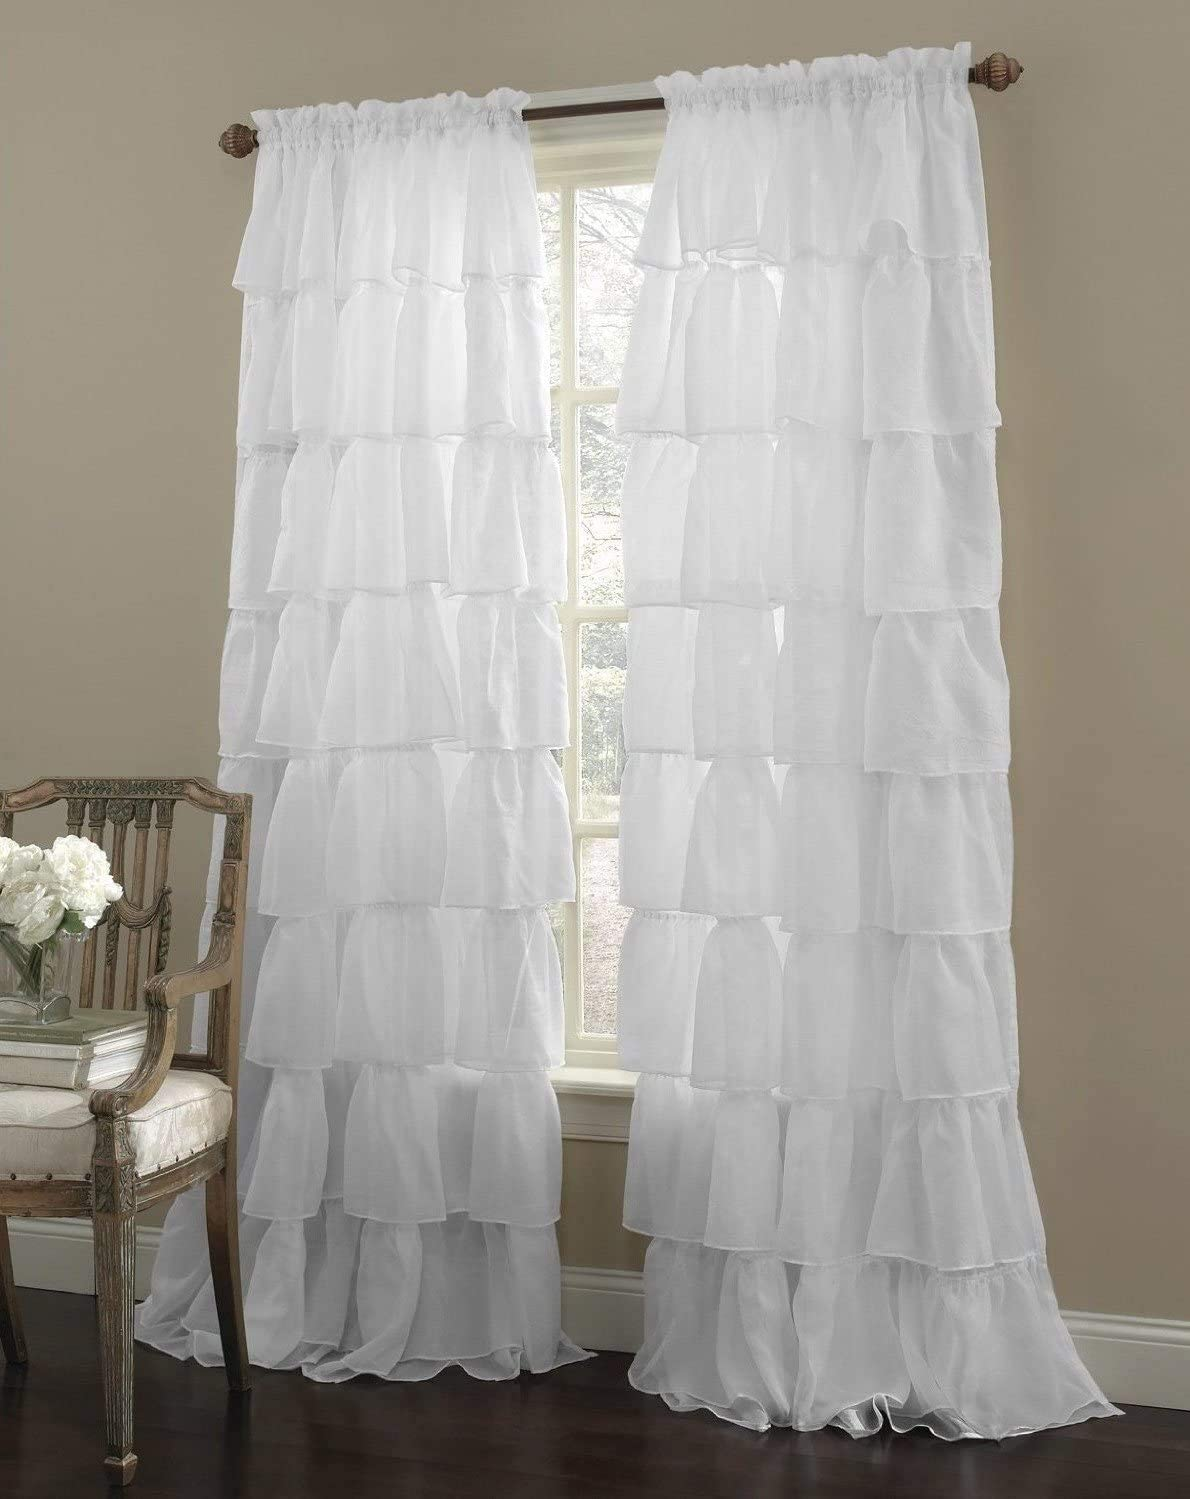 Decotex 2 Piece Gypsy Ruffled Shabby Chic Crushed Voile Sheer Window Curtain Treatment Panel Drapes White, 55 X 95